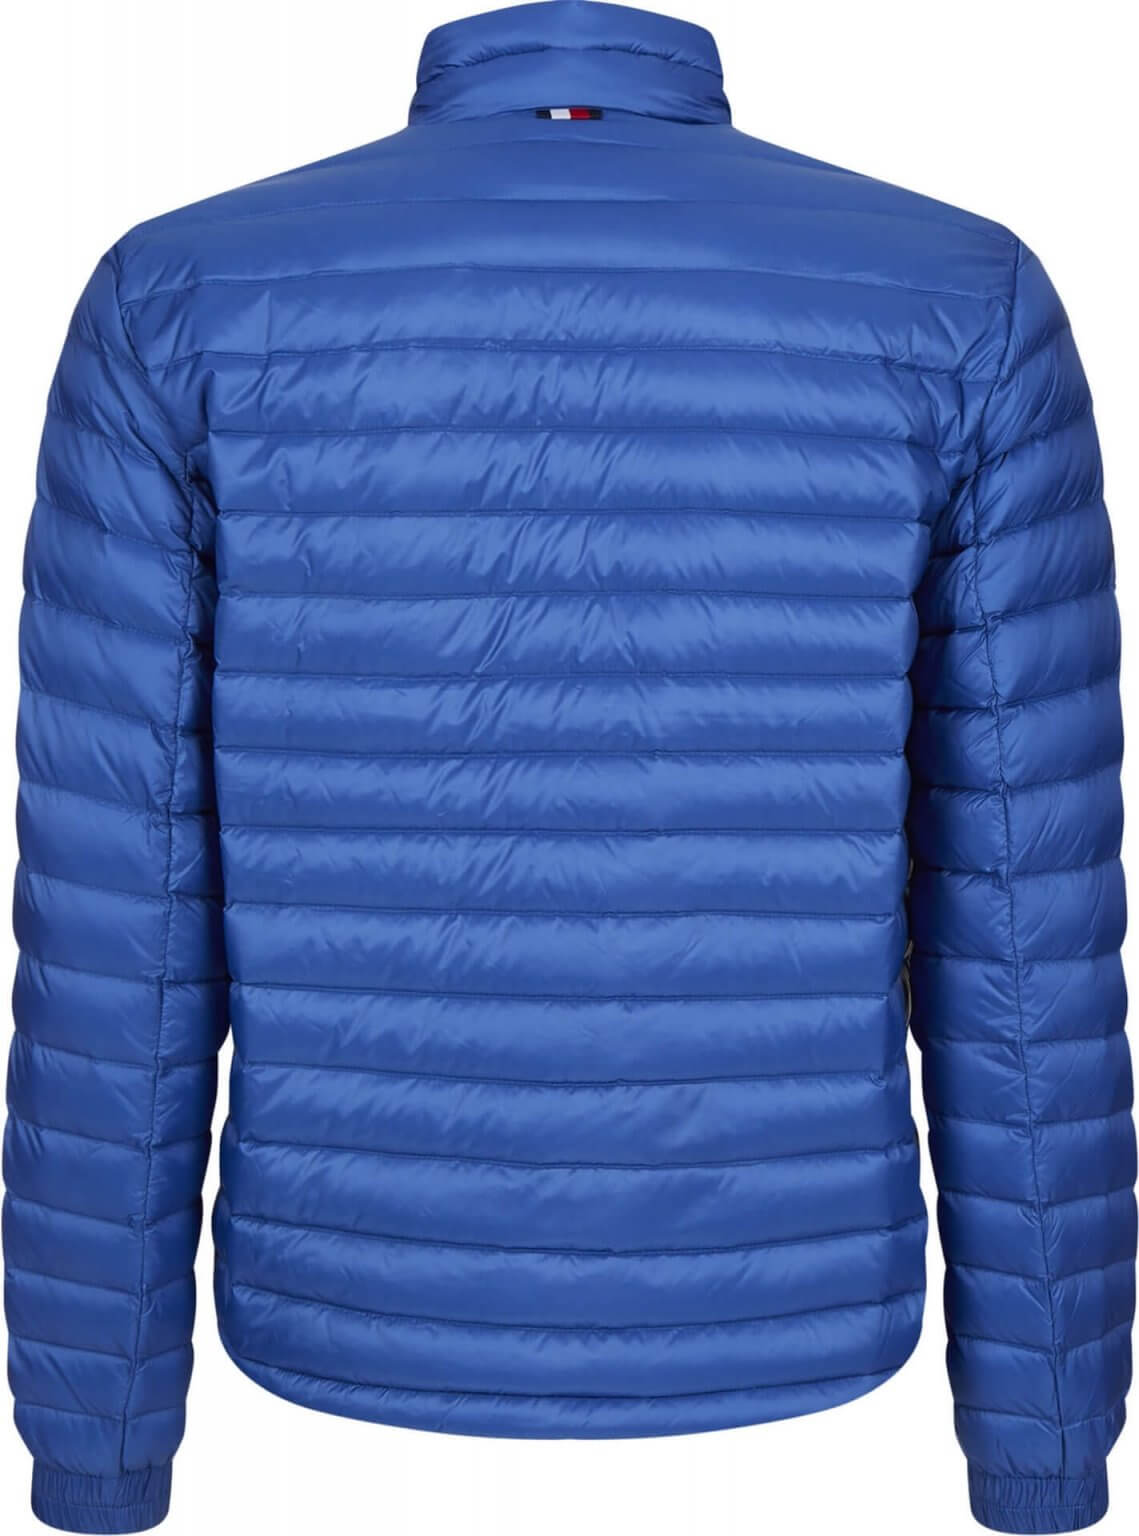 Tommy Hilfiger Packable Jacket | Davids Of Haslemere